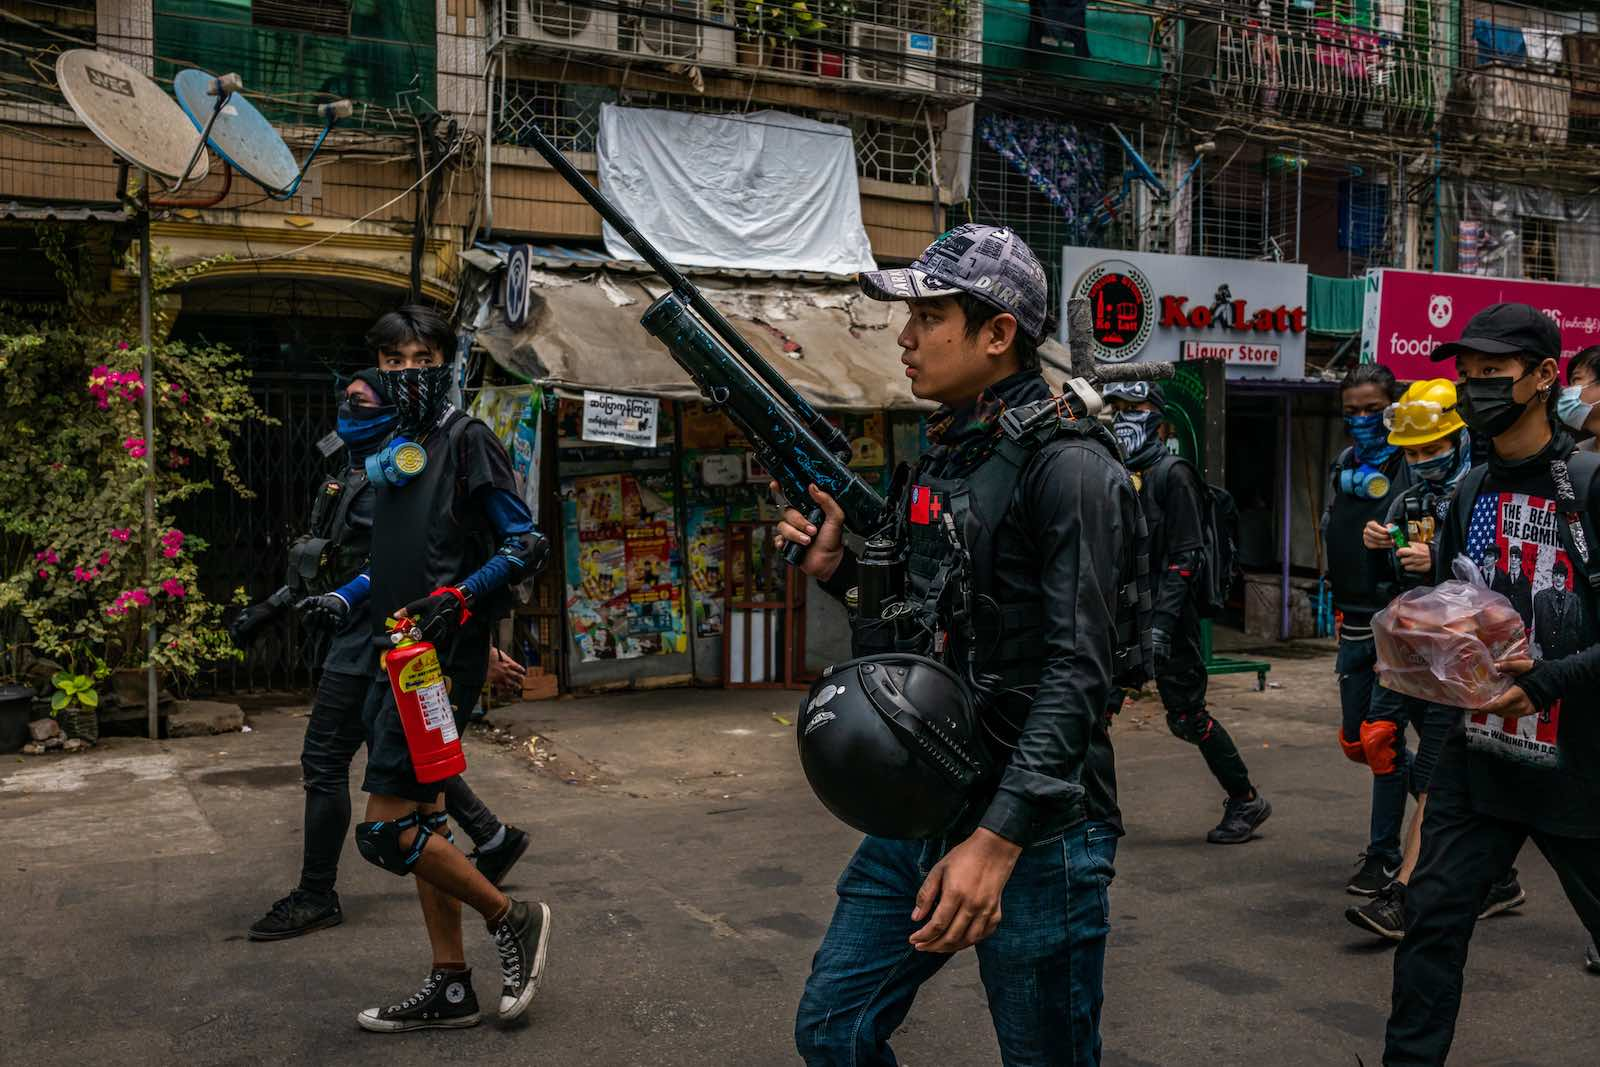 Anti-coup protesters carry improvised weapons during a protest on 3 April 2021 in Yangon, Myanmar (Stringer/Getty Images)